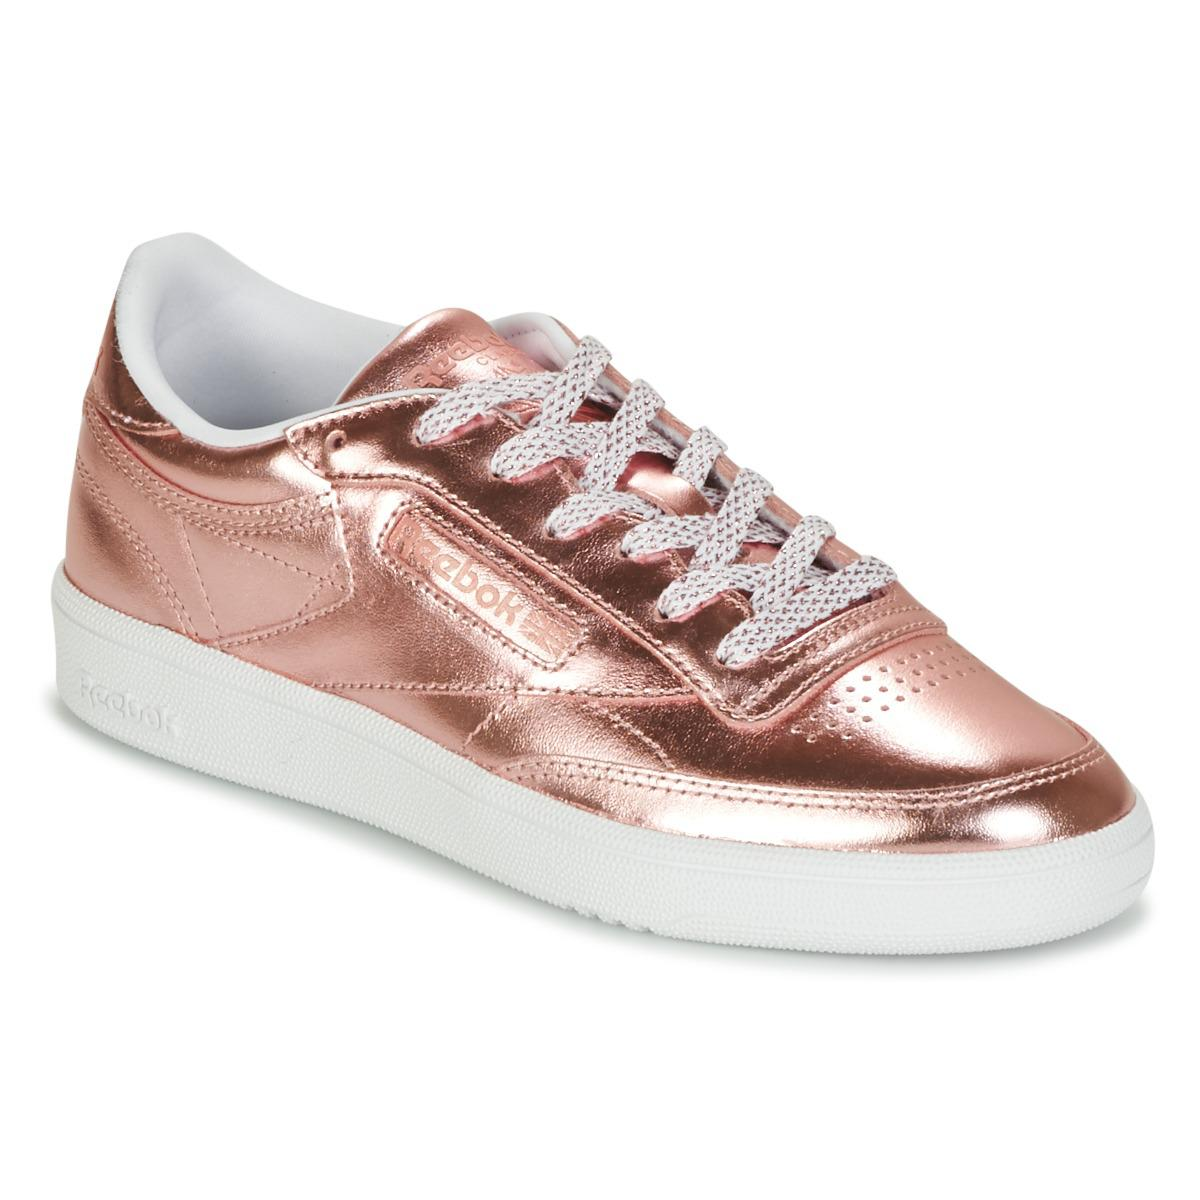 d9c26d40eb8ddc Reebok Club C 85 S Shine Women s Shoes (trainers) In Pink in Pink ...